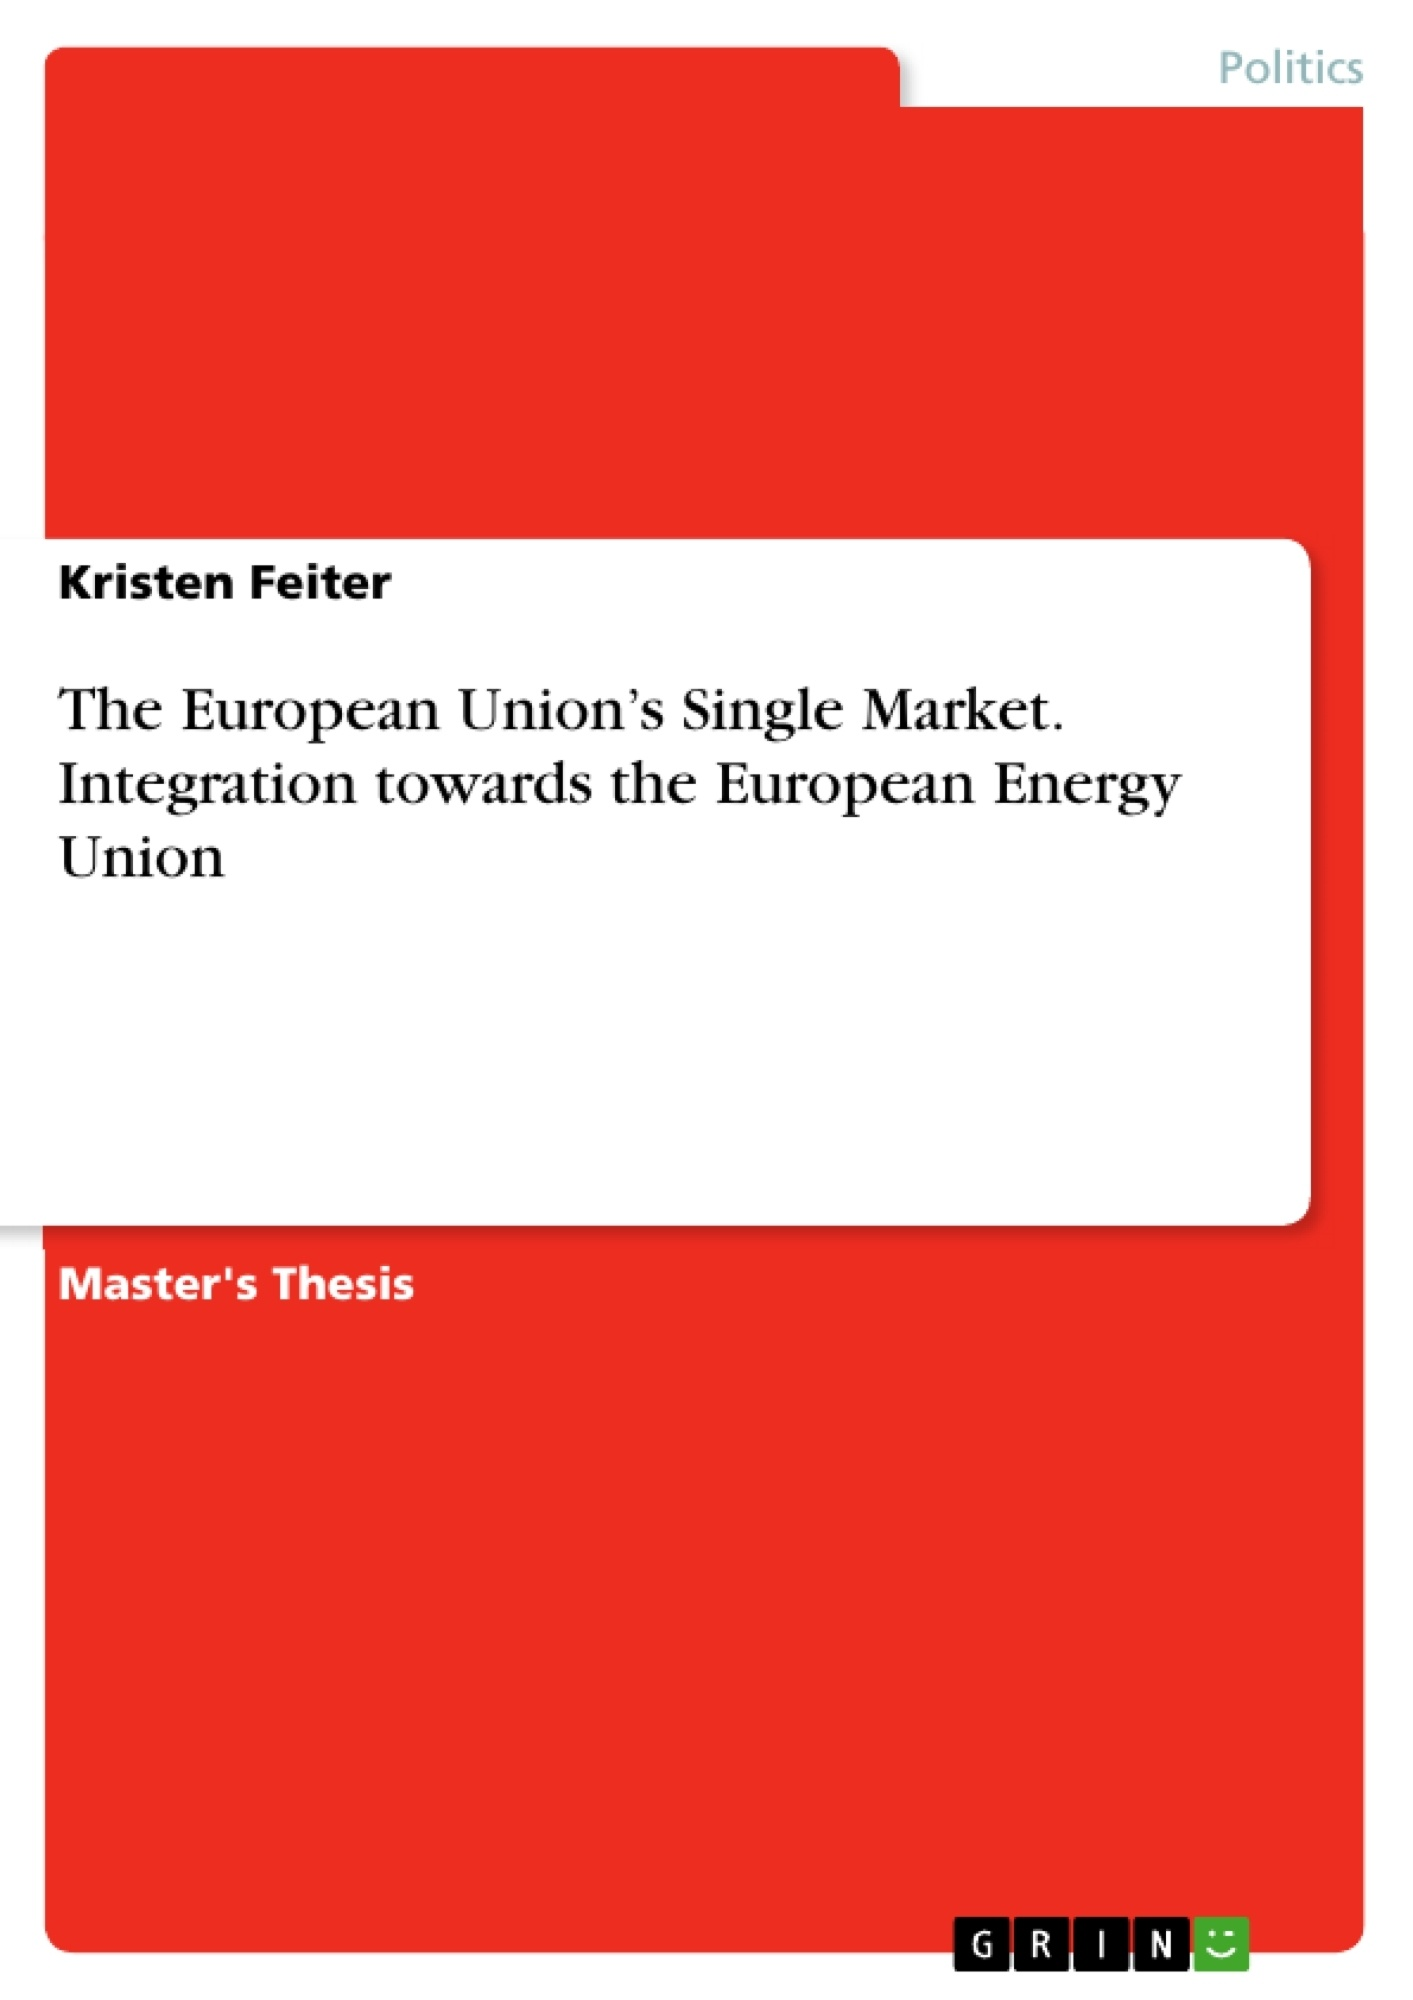 Title: The European Union's Single Market. Integration towards the European Energy Union